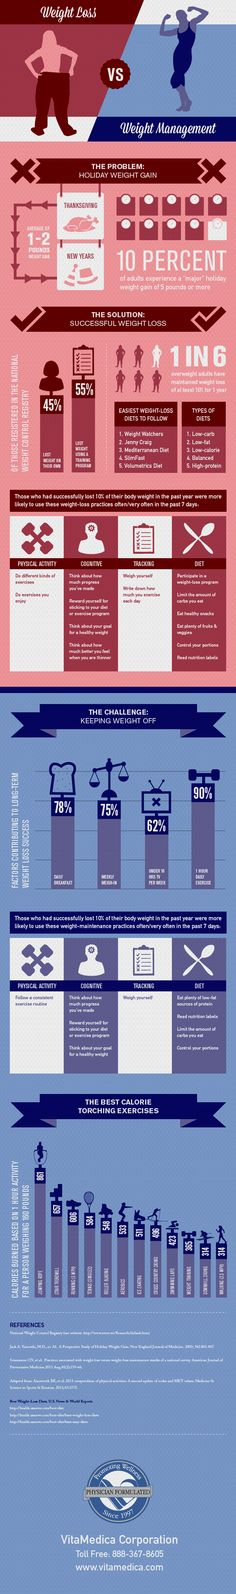 Weight Loss vs. Weight Maintenance Infographic From @VitaMedica Corporation http://www.VitaMedica.com